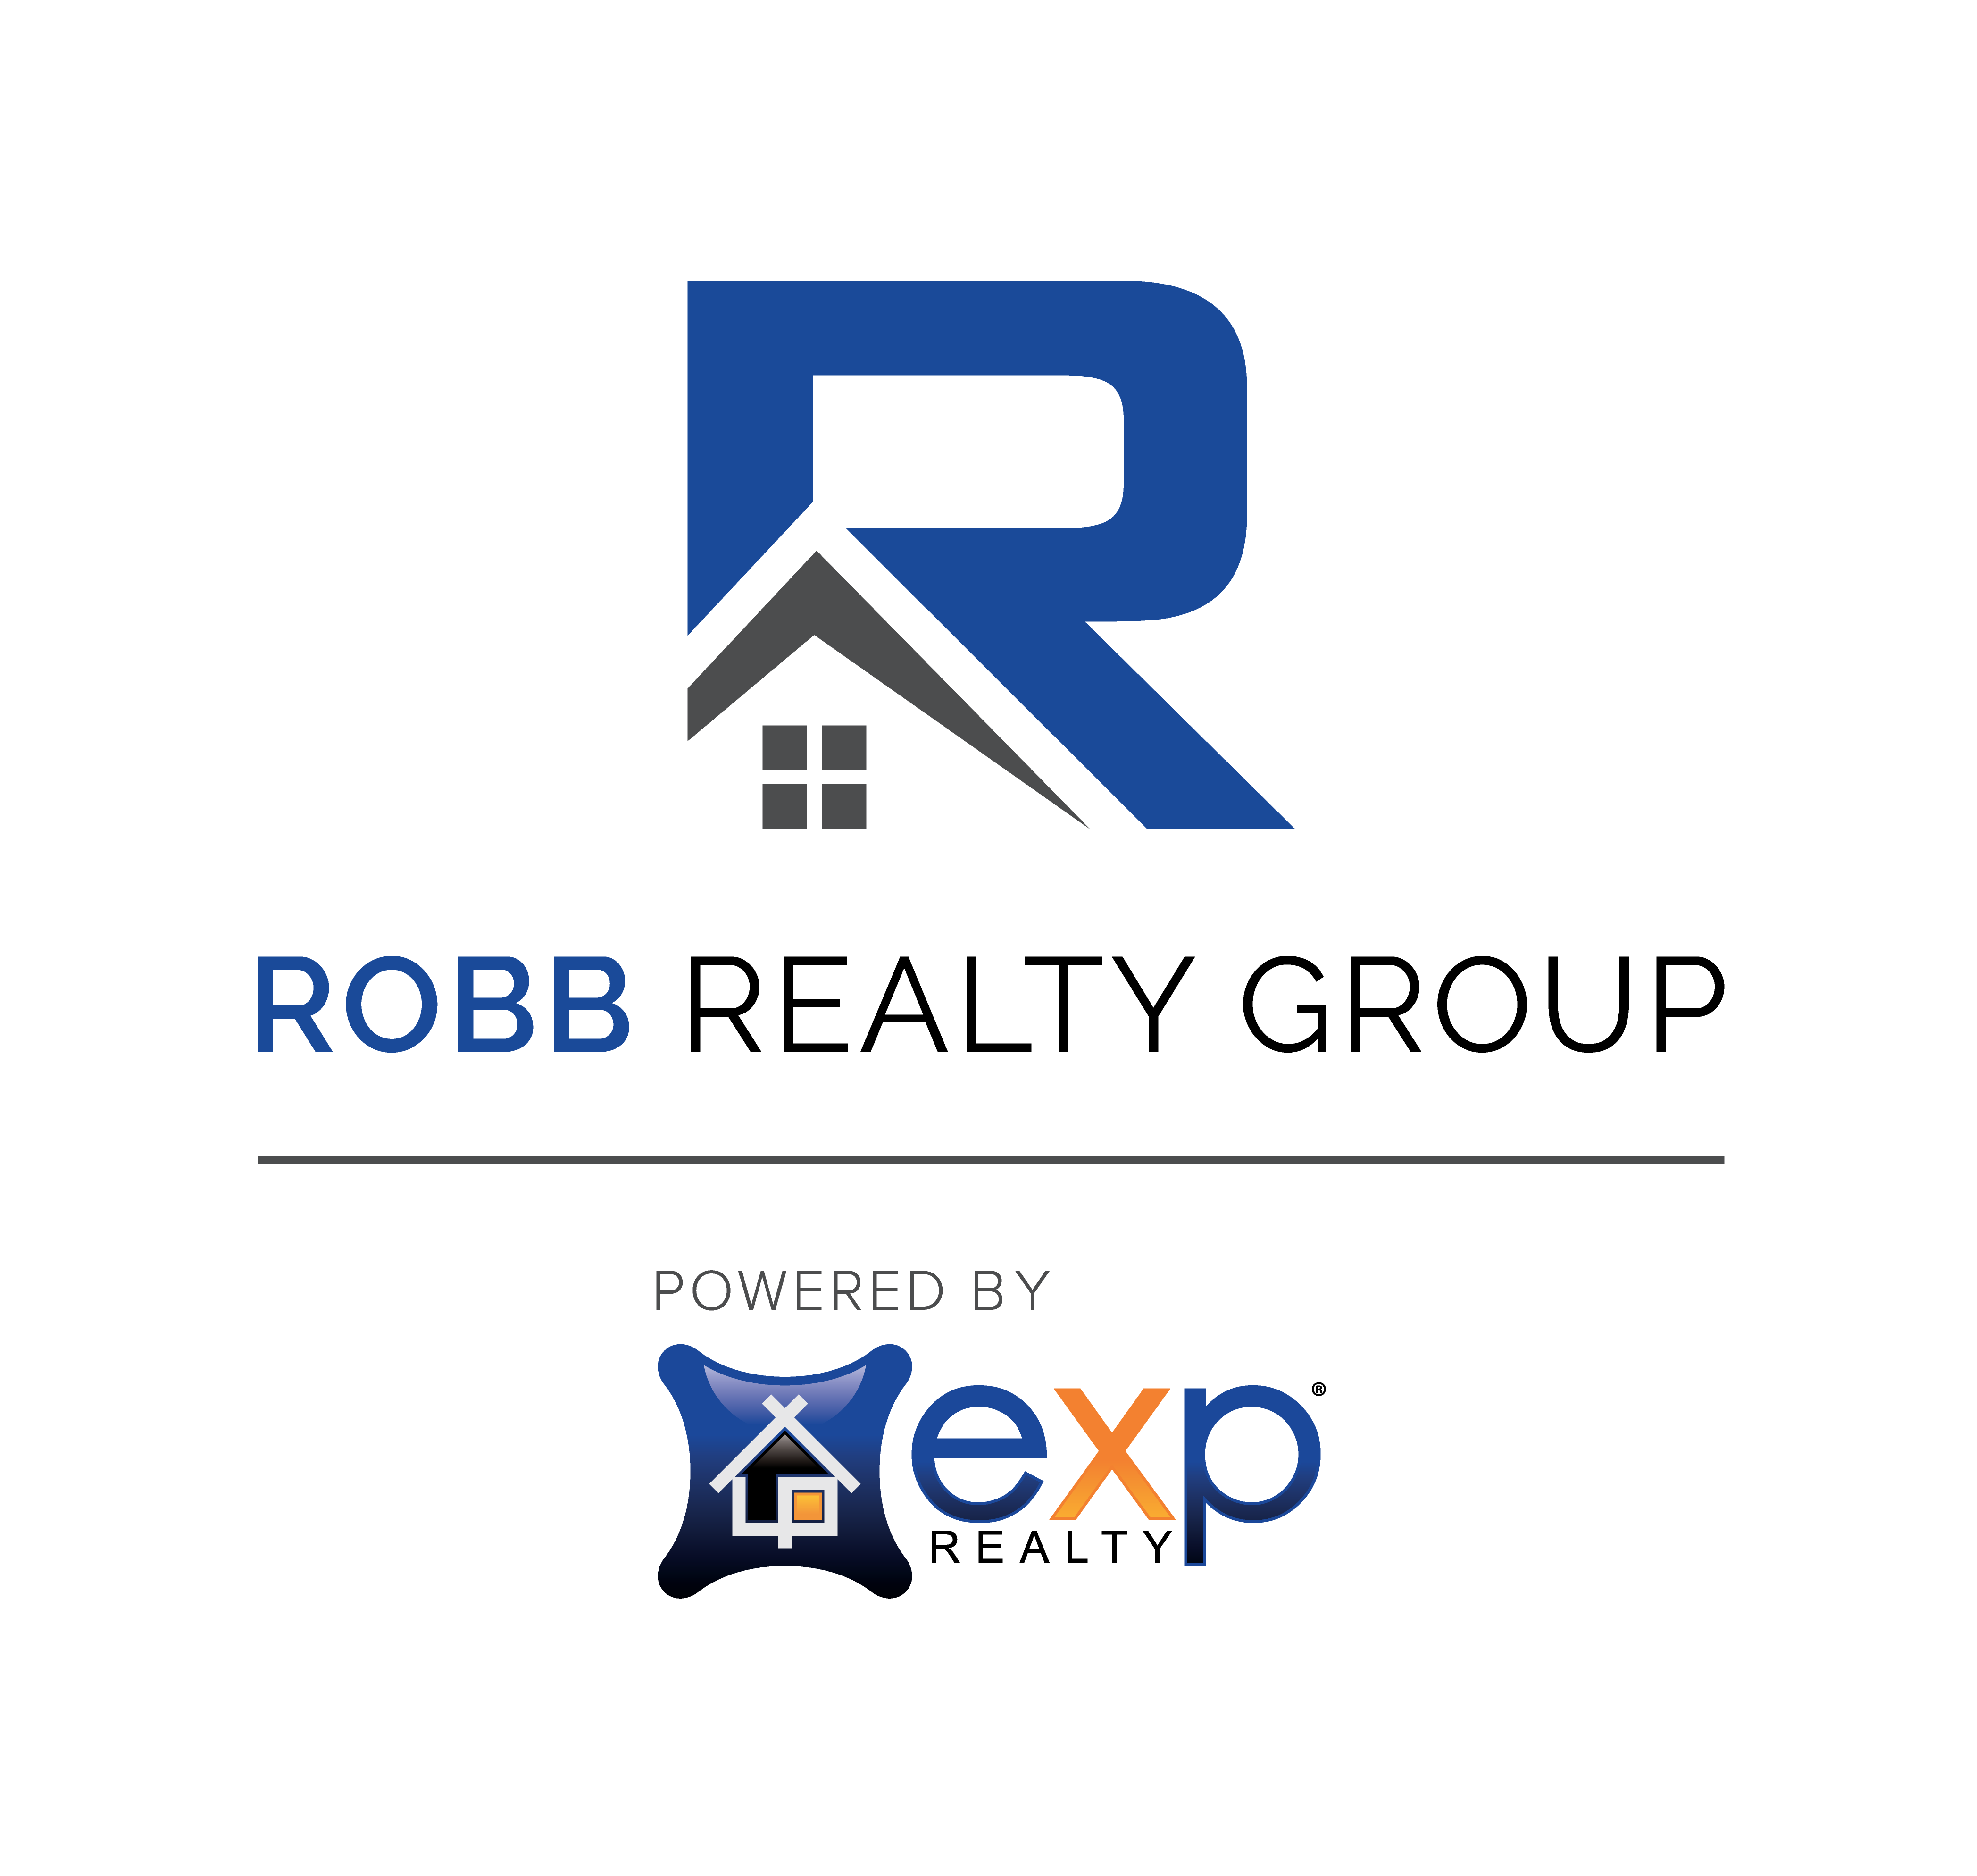 Robb Realty Group logo